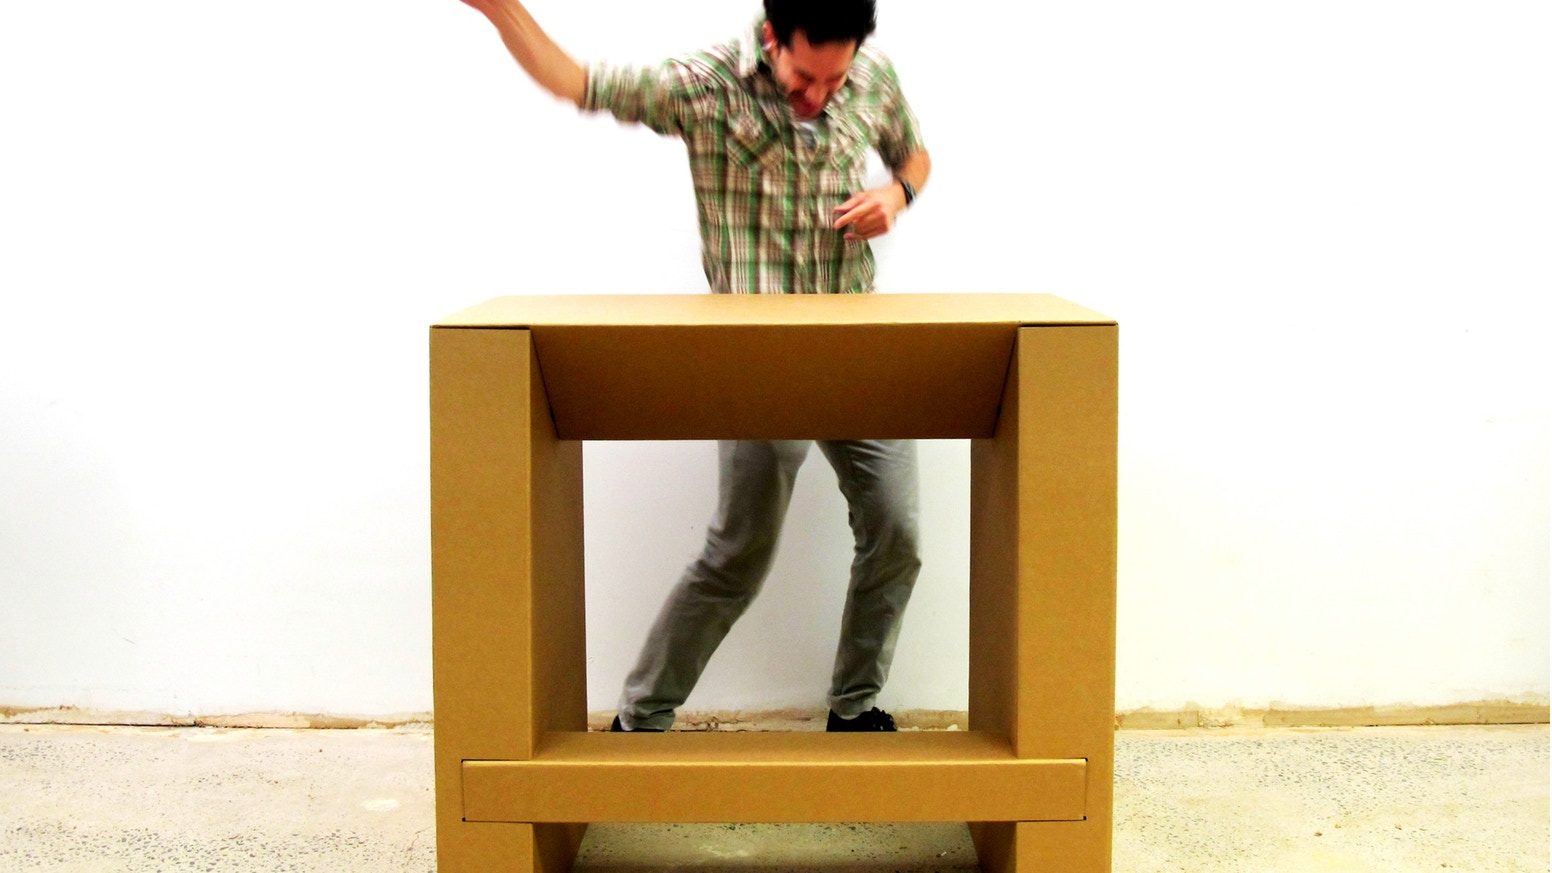 The Cardboard Standing Desk Stand Up